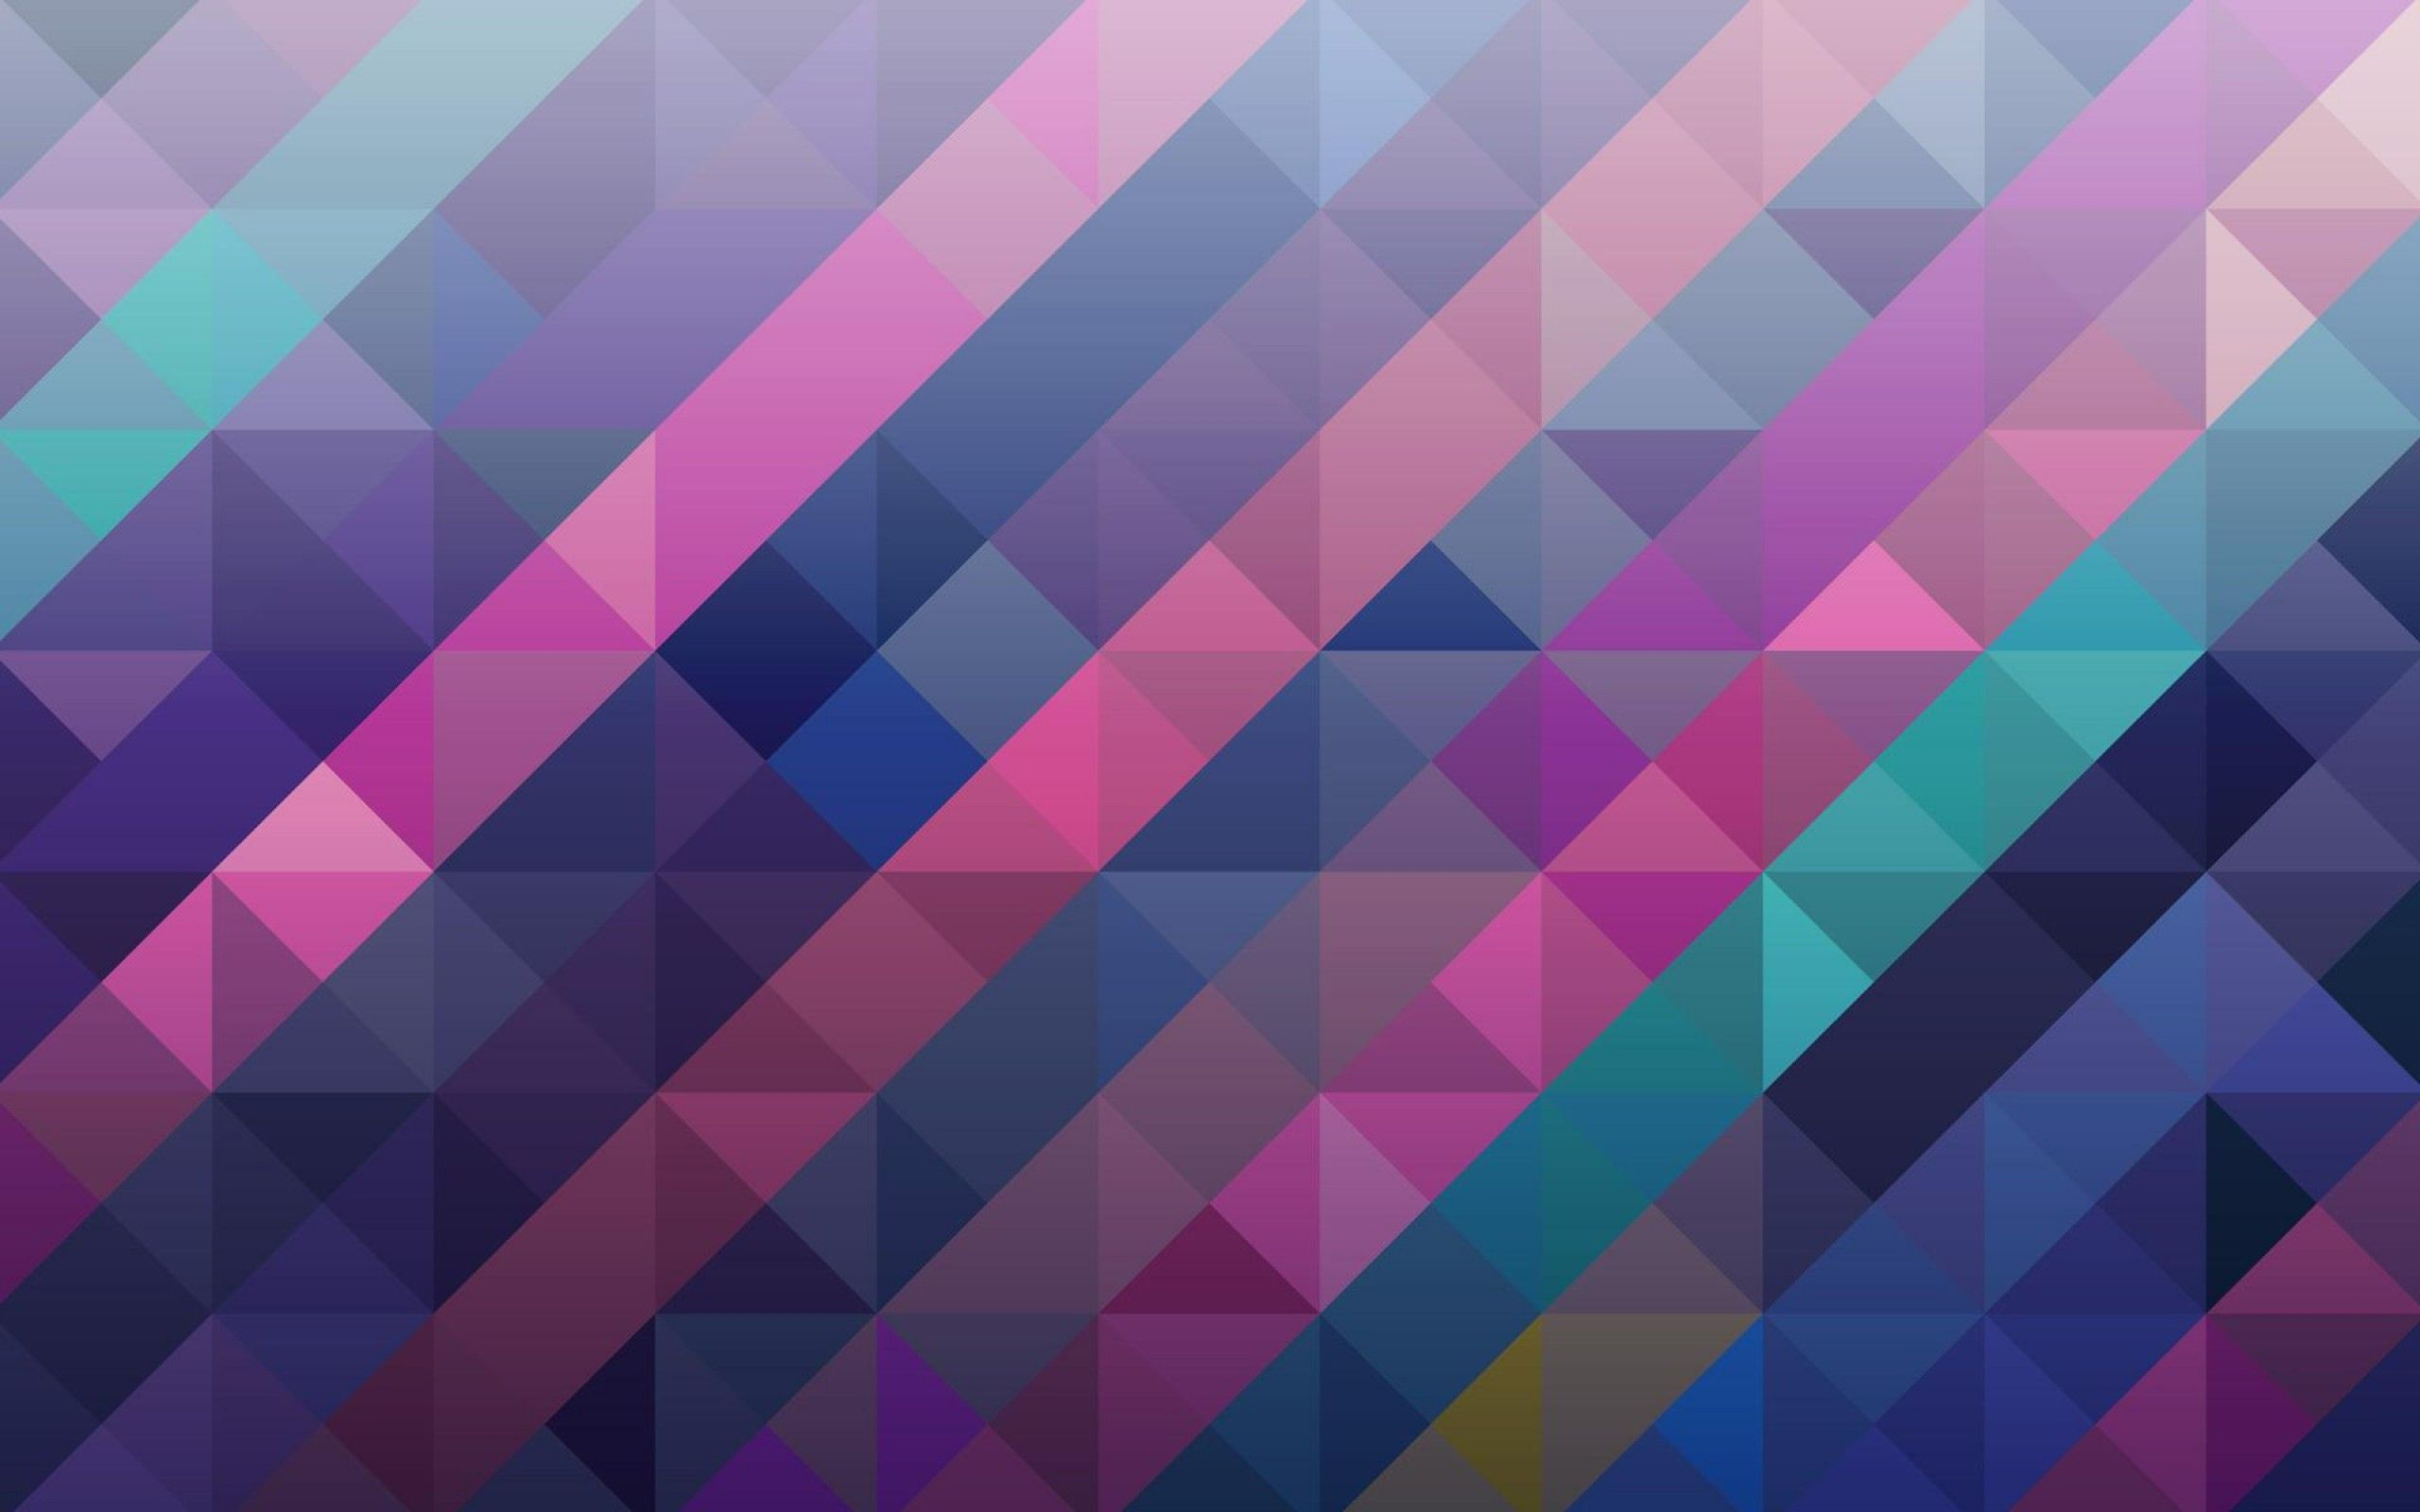 Samsung Galaxy Tab S 10 5 Wallpaper One Of The Best 10 Inch Abstract Geometric Abstract Wallpaper Abstract Wallpaper